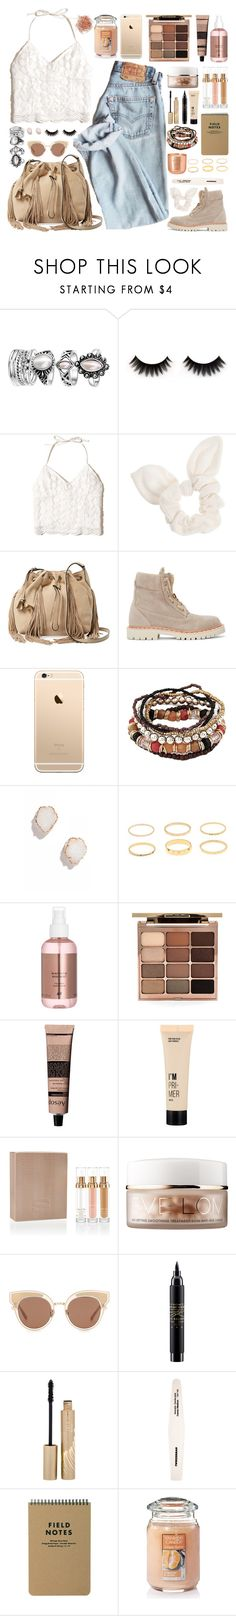 """""""We live alone in two different worlds, me in a fantasy, you in your memories, But we get along."""" by povring ❤ liked on Polyvore featuring Hollister Co., Dorothy Perkins, Diane Von Furstenberg, Balmain, Kendra Scott, Stila, Aesop, Charlotte Russe, Sisley and Eve Lom"""